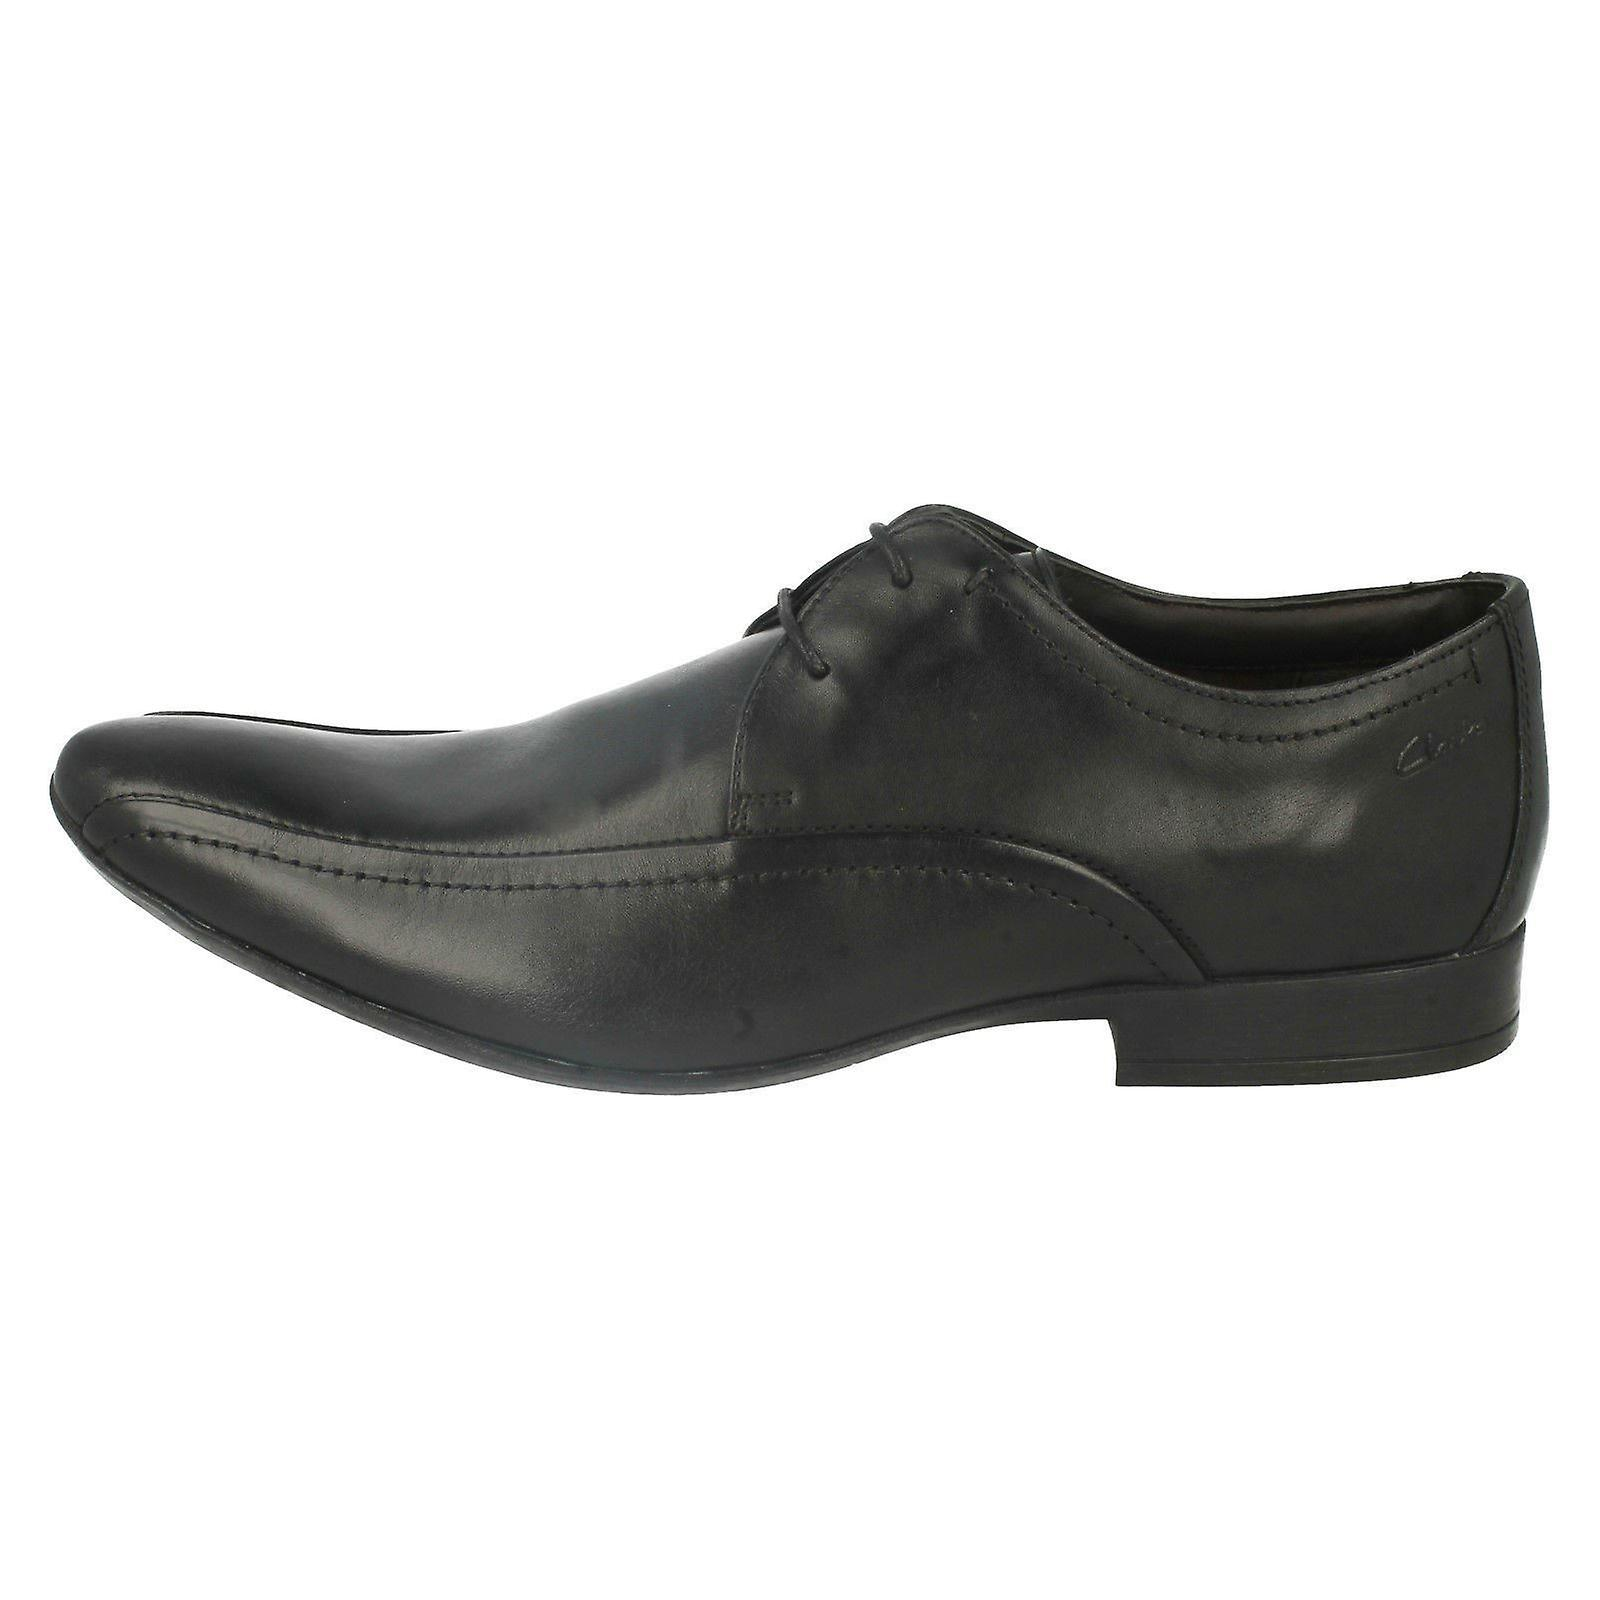 Mens Clarks Formal Lace Up Shoes Glint Up